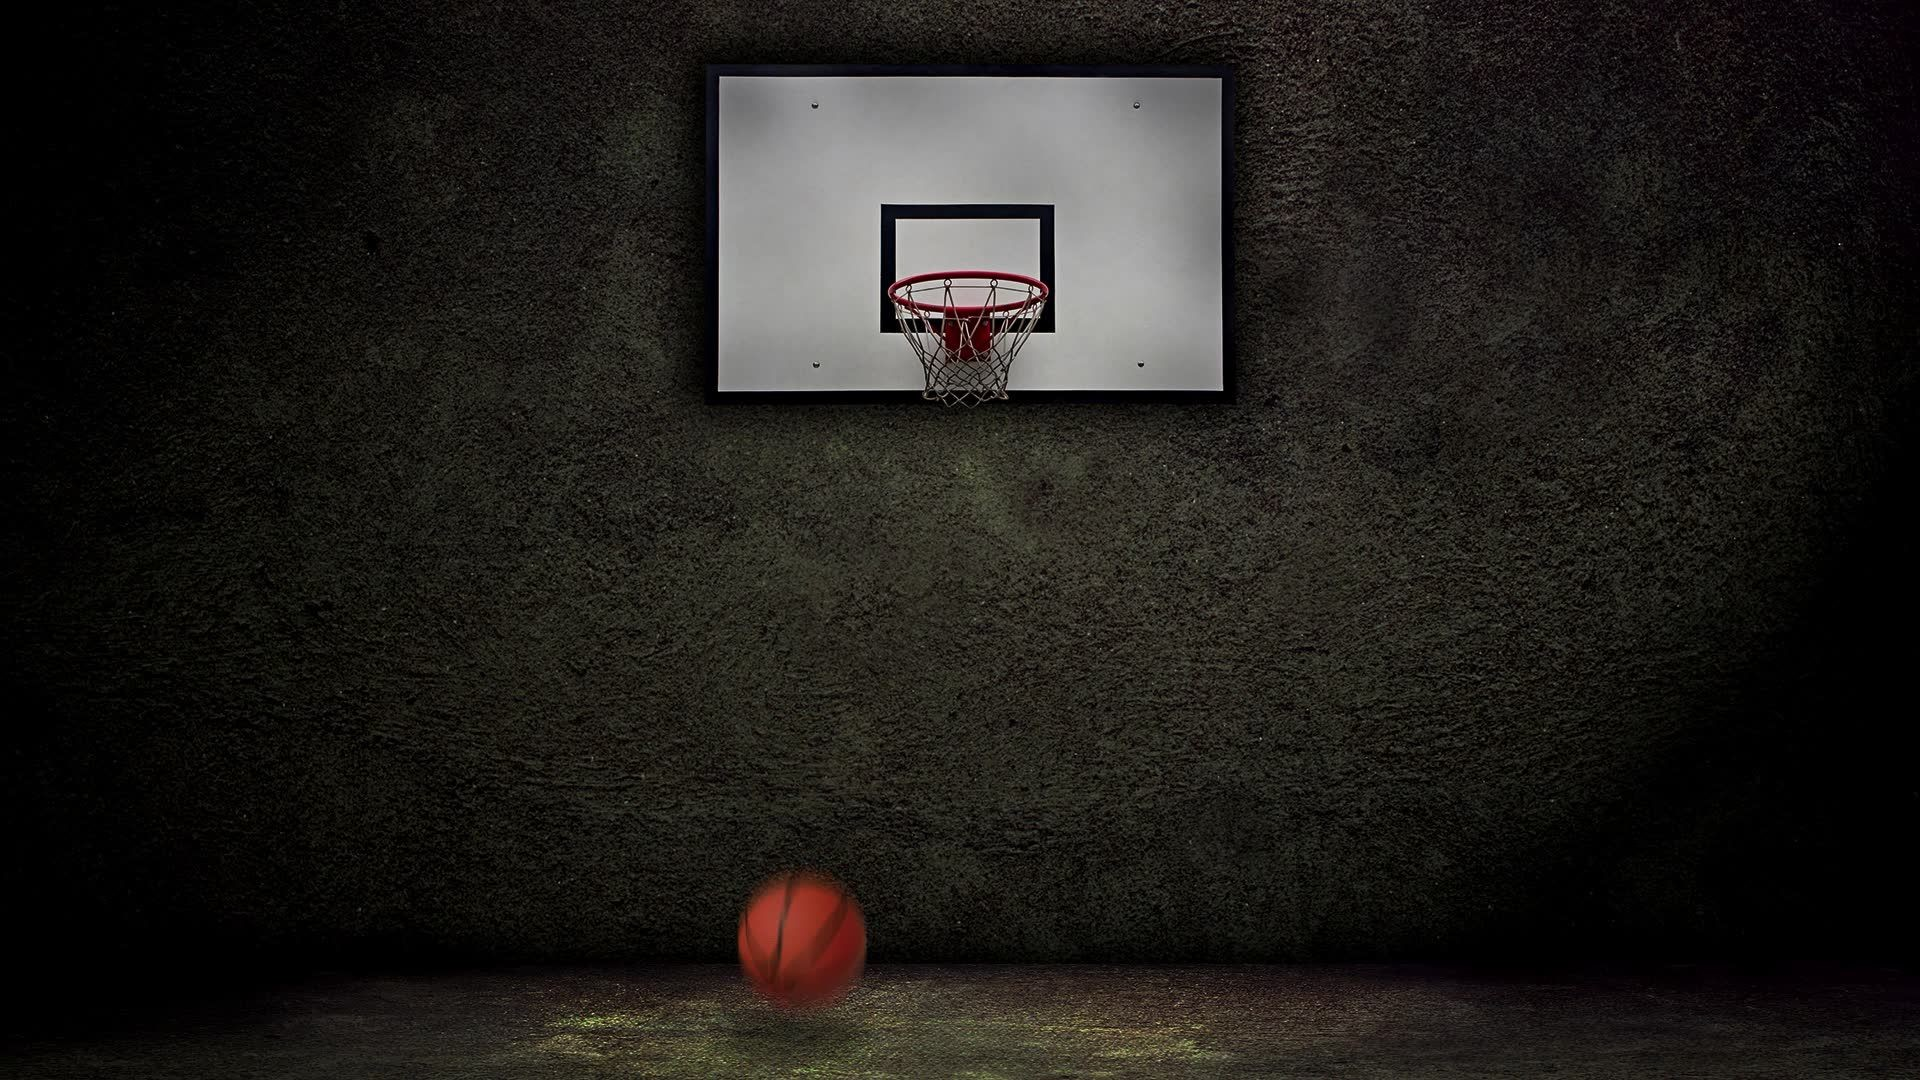 Res: 1920x1080, Basketball Wallpapers HD for Free Download on MoboMarket 1600×1200 Basketball  Wallpapers Download (44